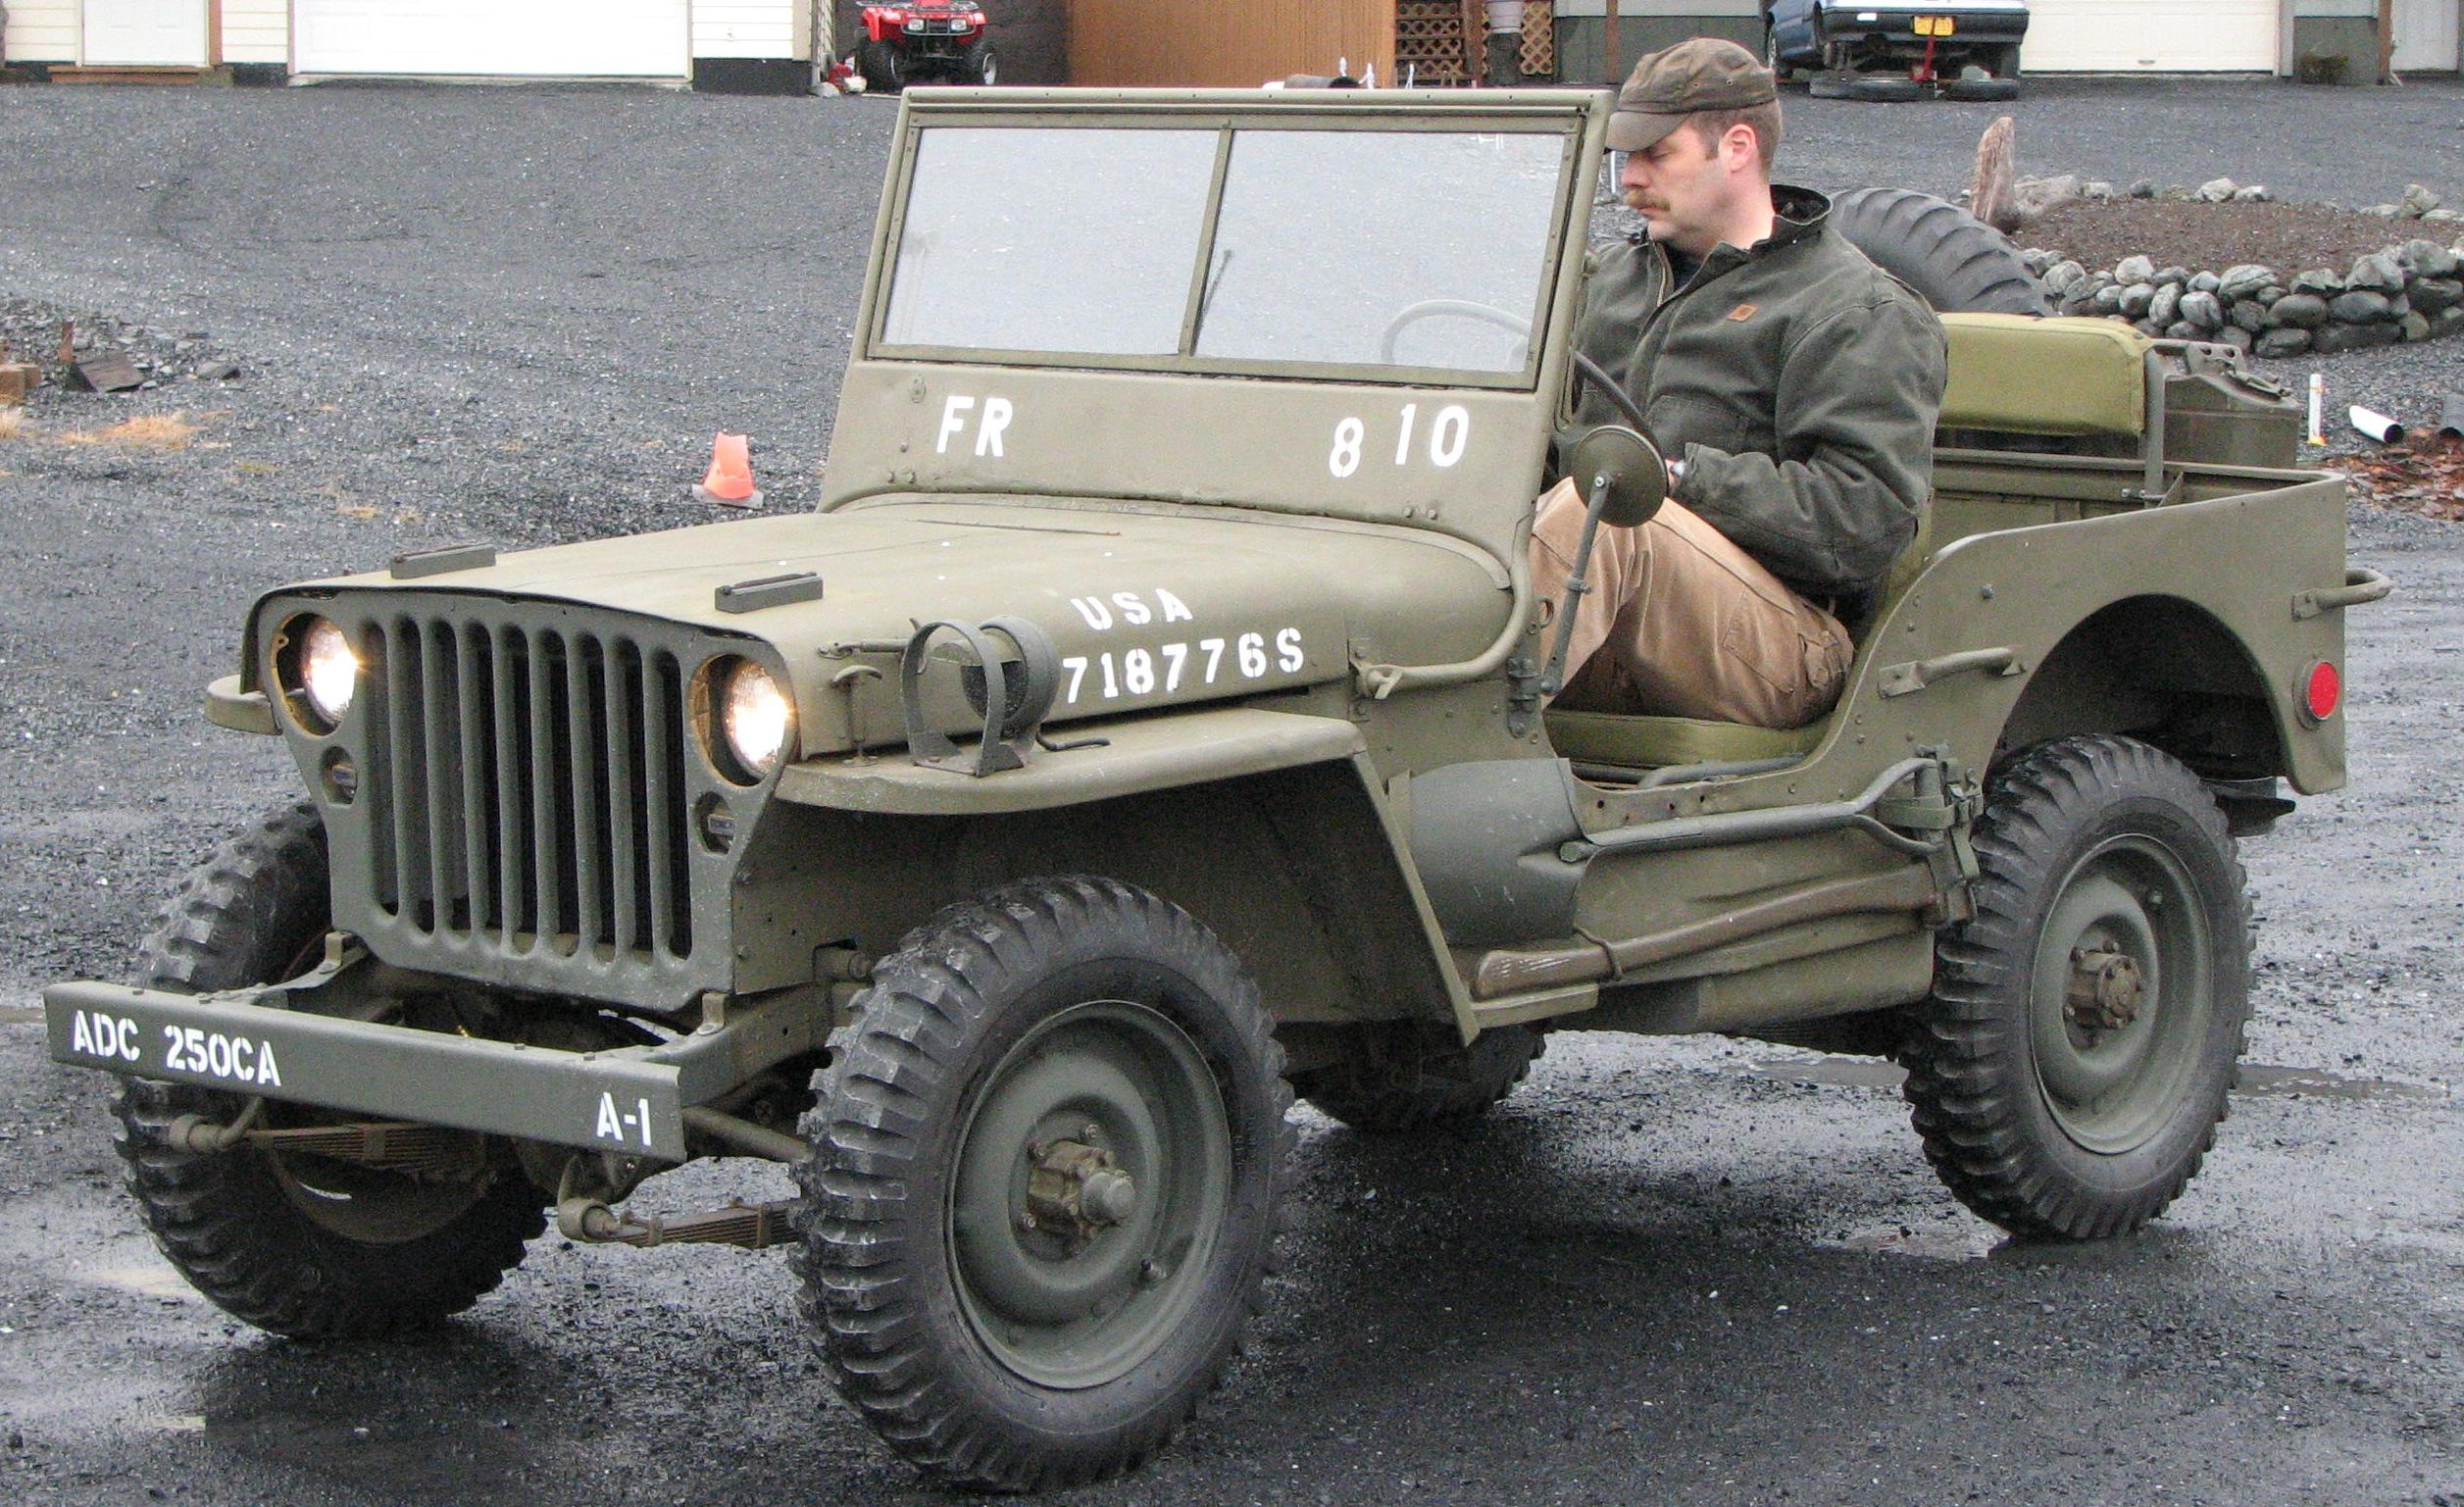 kodiak military history 1945 willys mb jeep. Black Bedroom Furniture Sets. Home Design Ideas